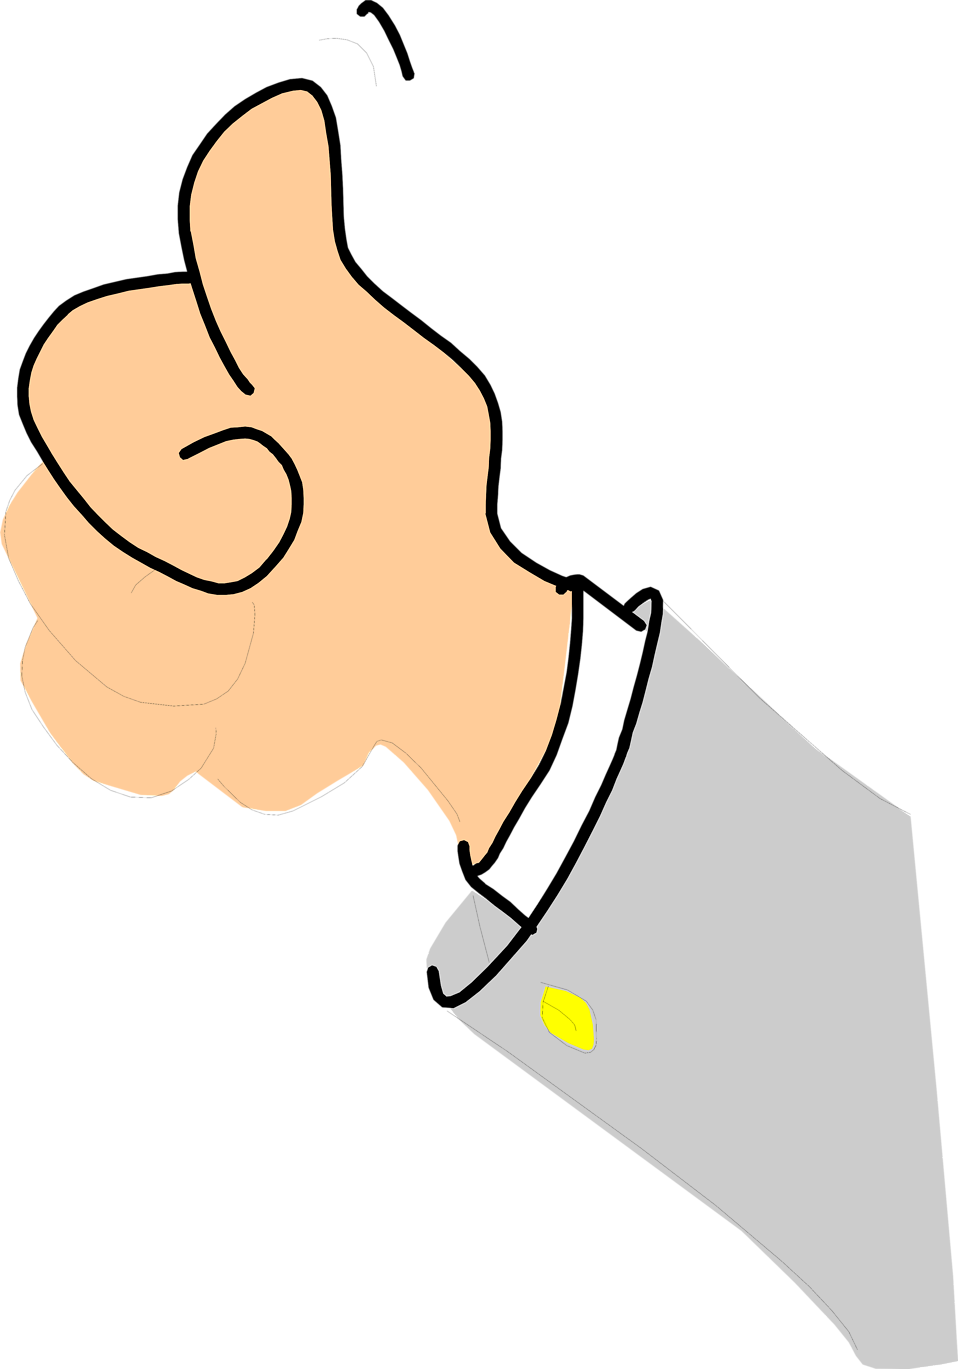 Man with thumbs up clipart clip freeuse stock Thumbs Up | Free Stock Photo | Illustration of a cartoon hand giving ... clip freeuse stock